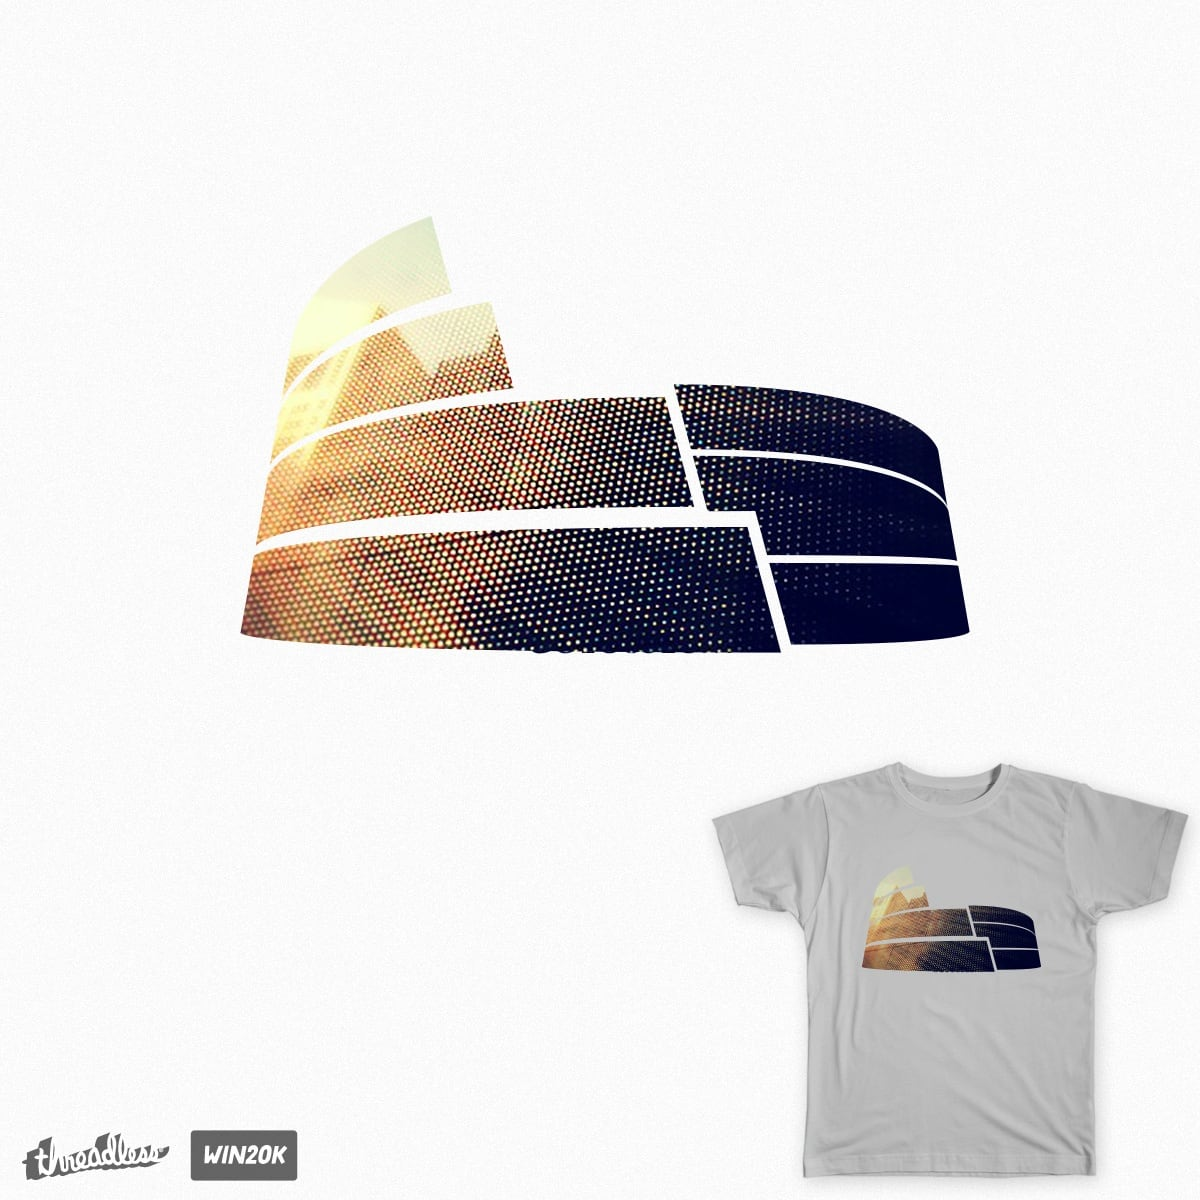 Colosseum by esr-dc on Threadless